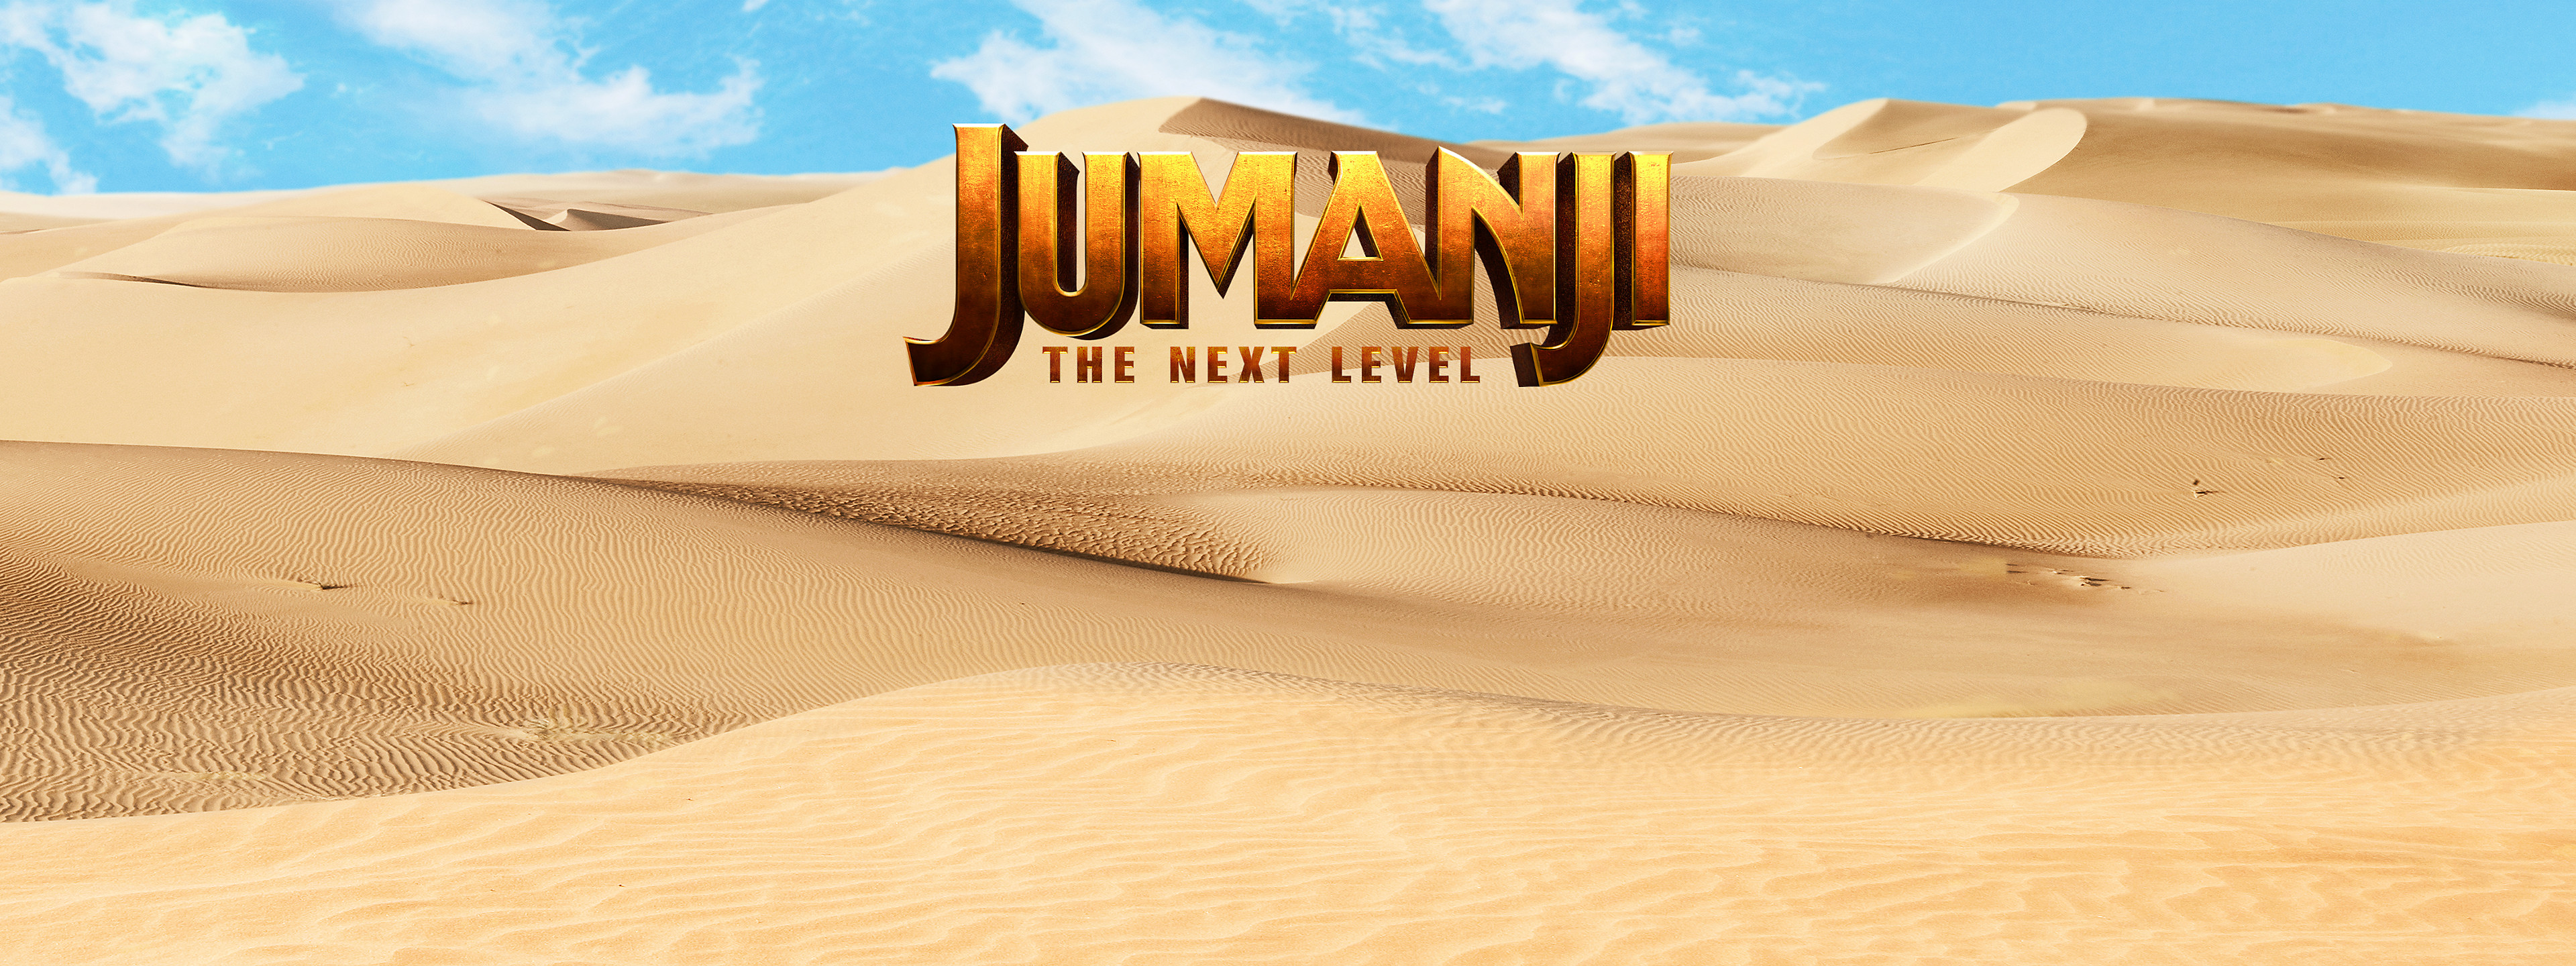 Jumanji: The Next Level Key Art